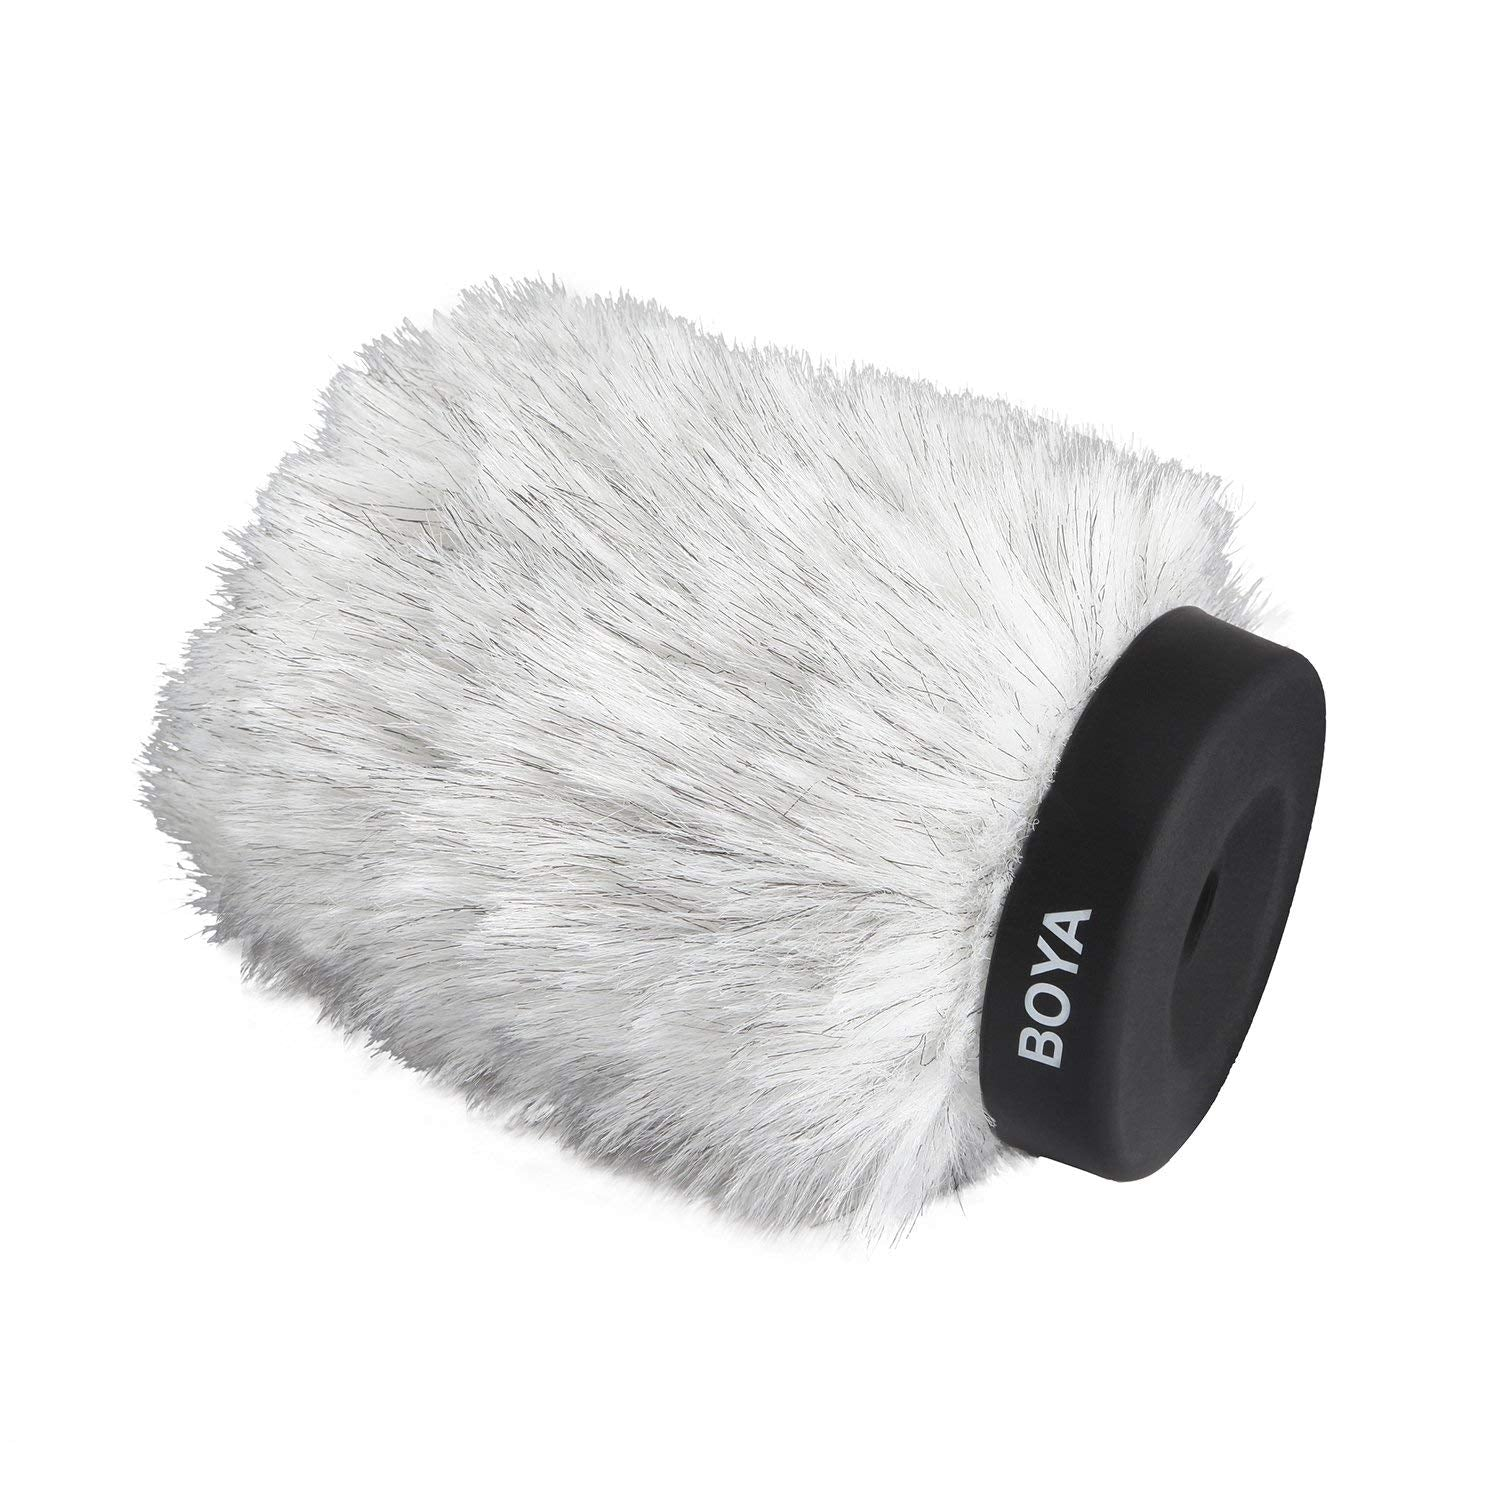 BOYA BY-P120 Furry Outdoor Interview Windshield Muff for Shotgun Capacitor Microphones (Inside Depth 4.8'')